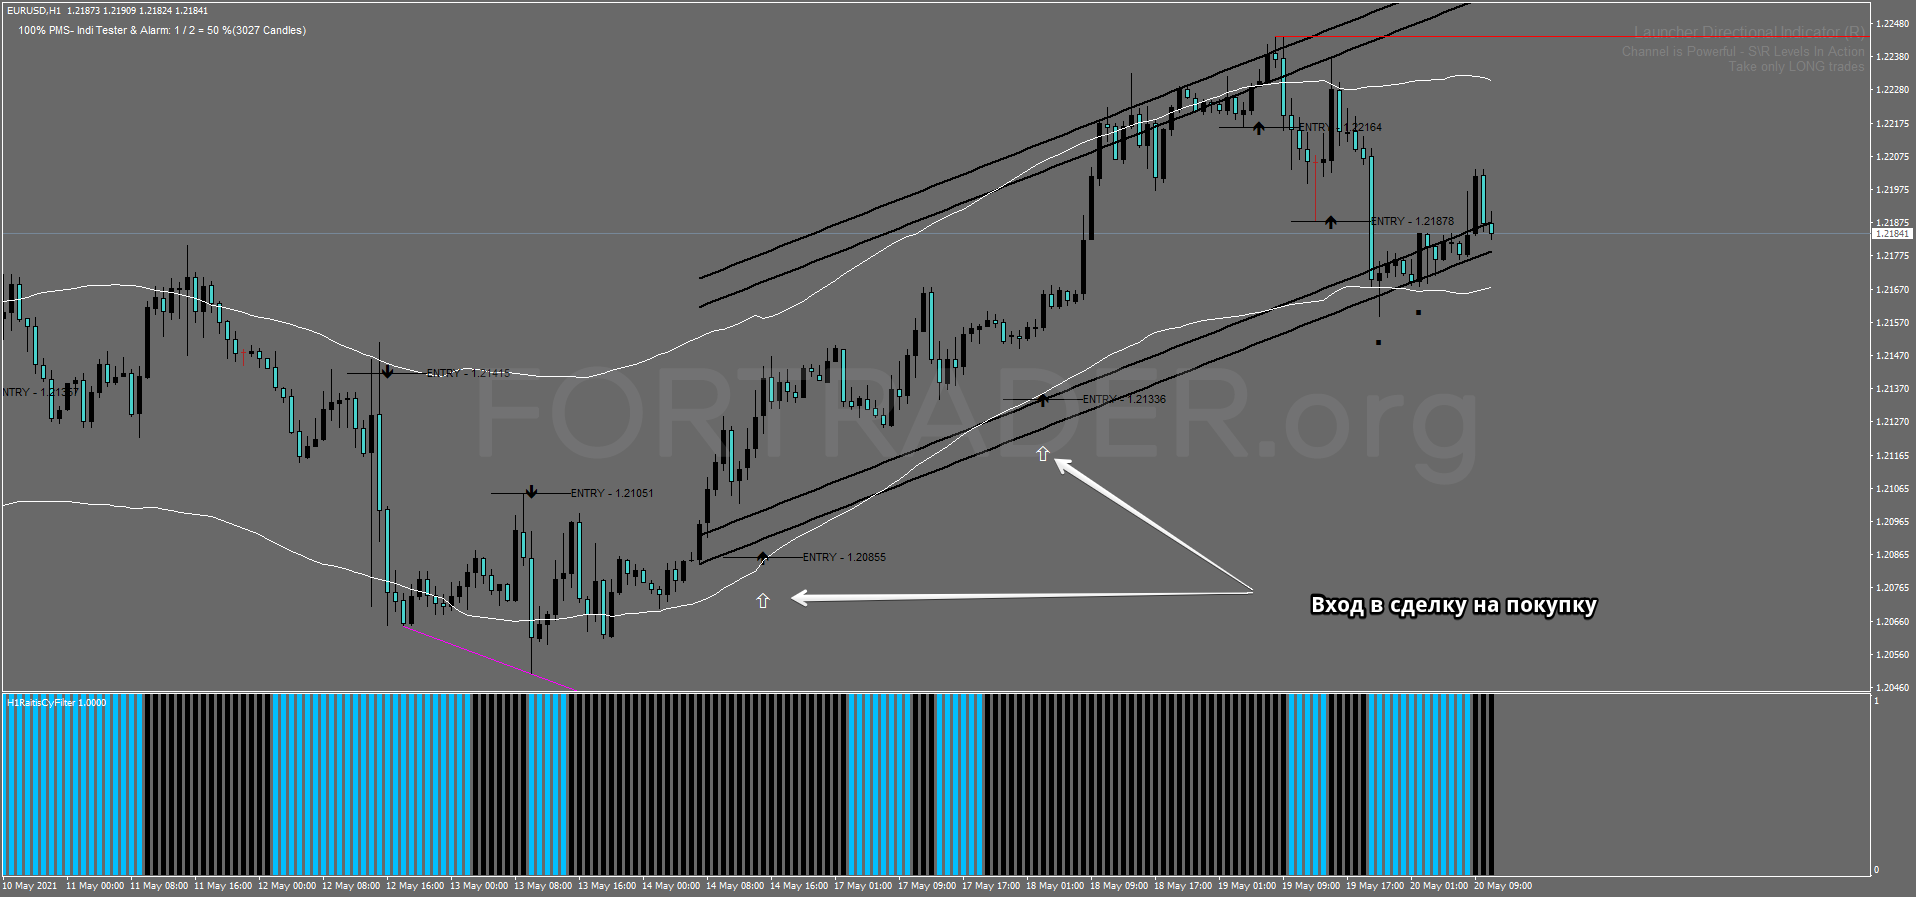 Trend Trading Strategy Price Action With Momentum Filter